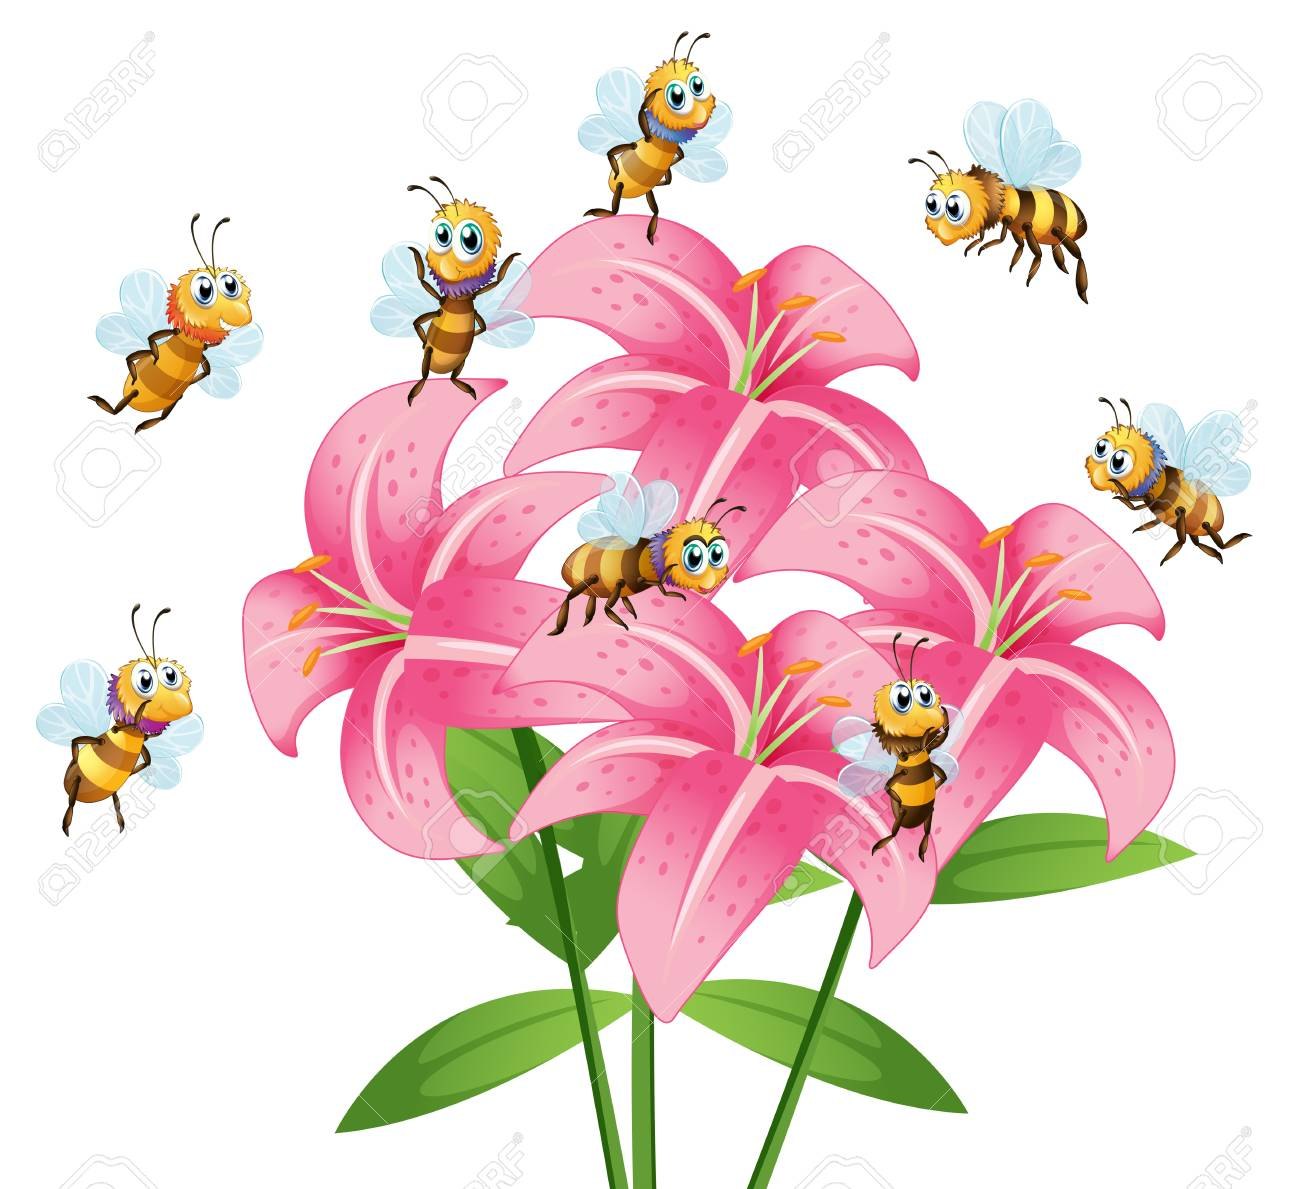 Many bees flying around the lily flower illustration royalty free many bees flying around the lily flower illustration stock vector 67370111 izmirmasajfo